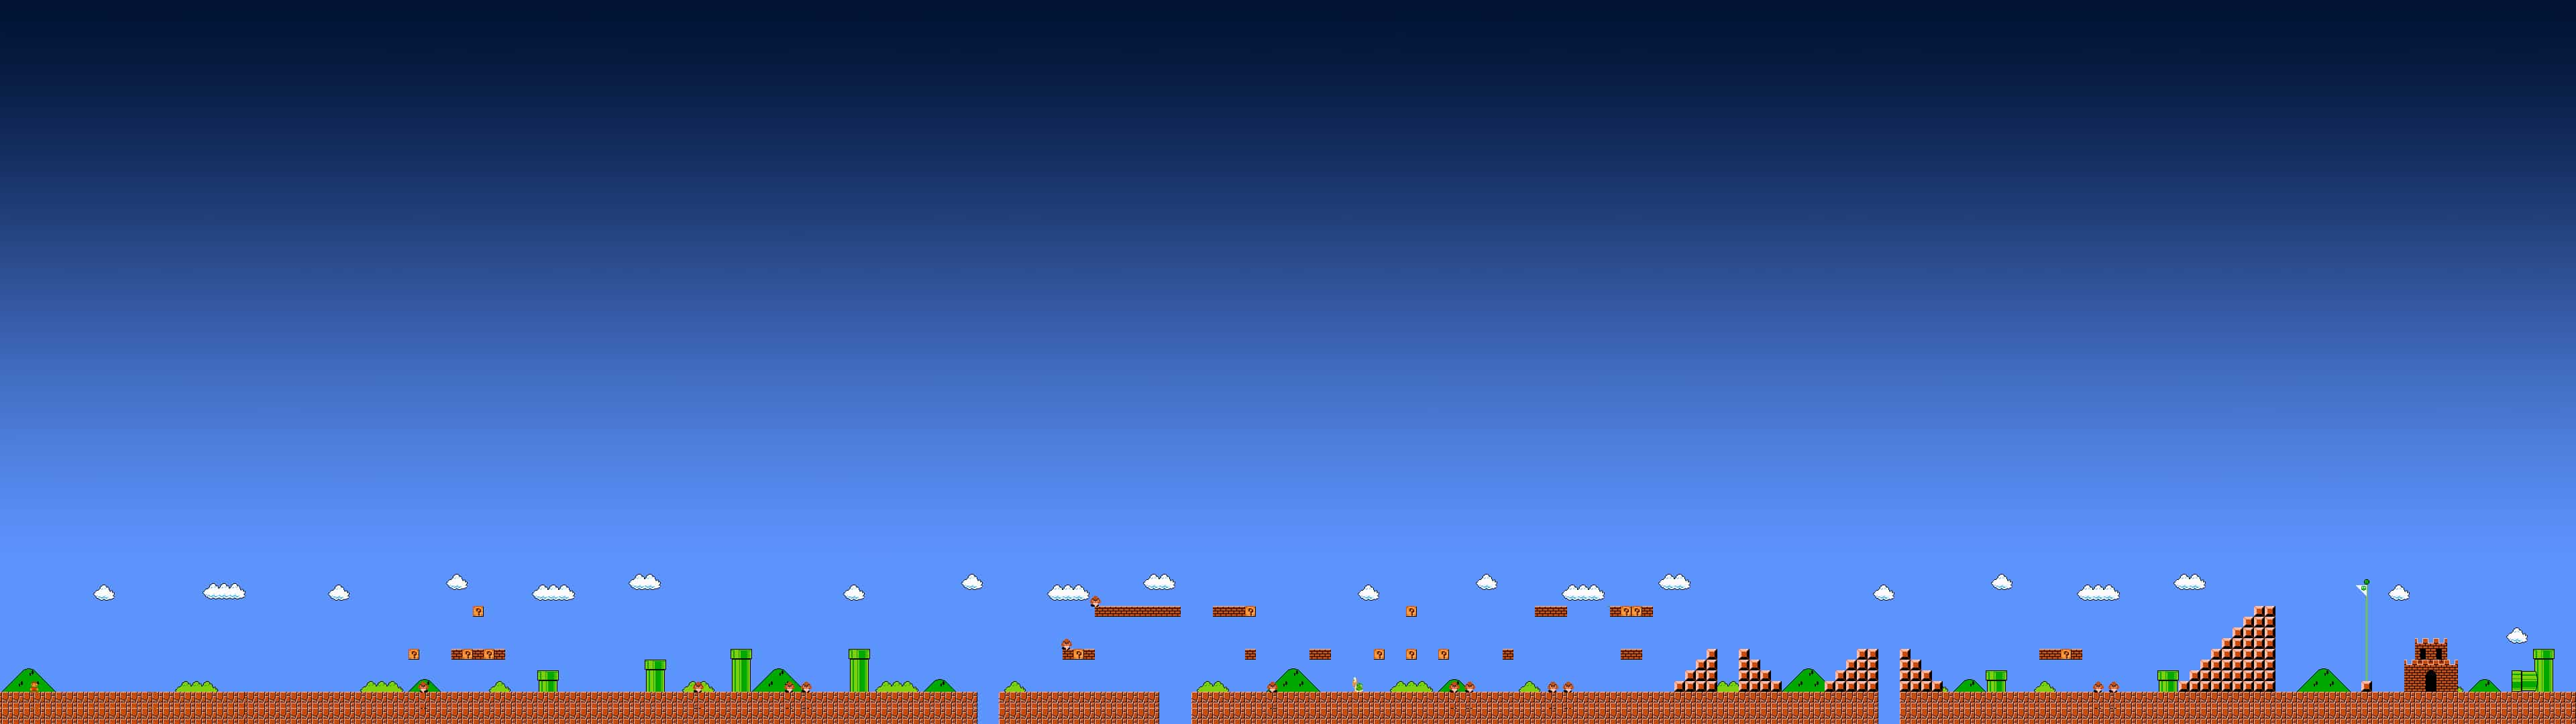 super mario bros dual monitor wallpaper